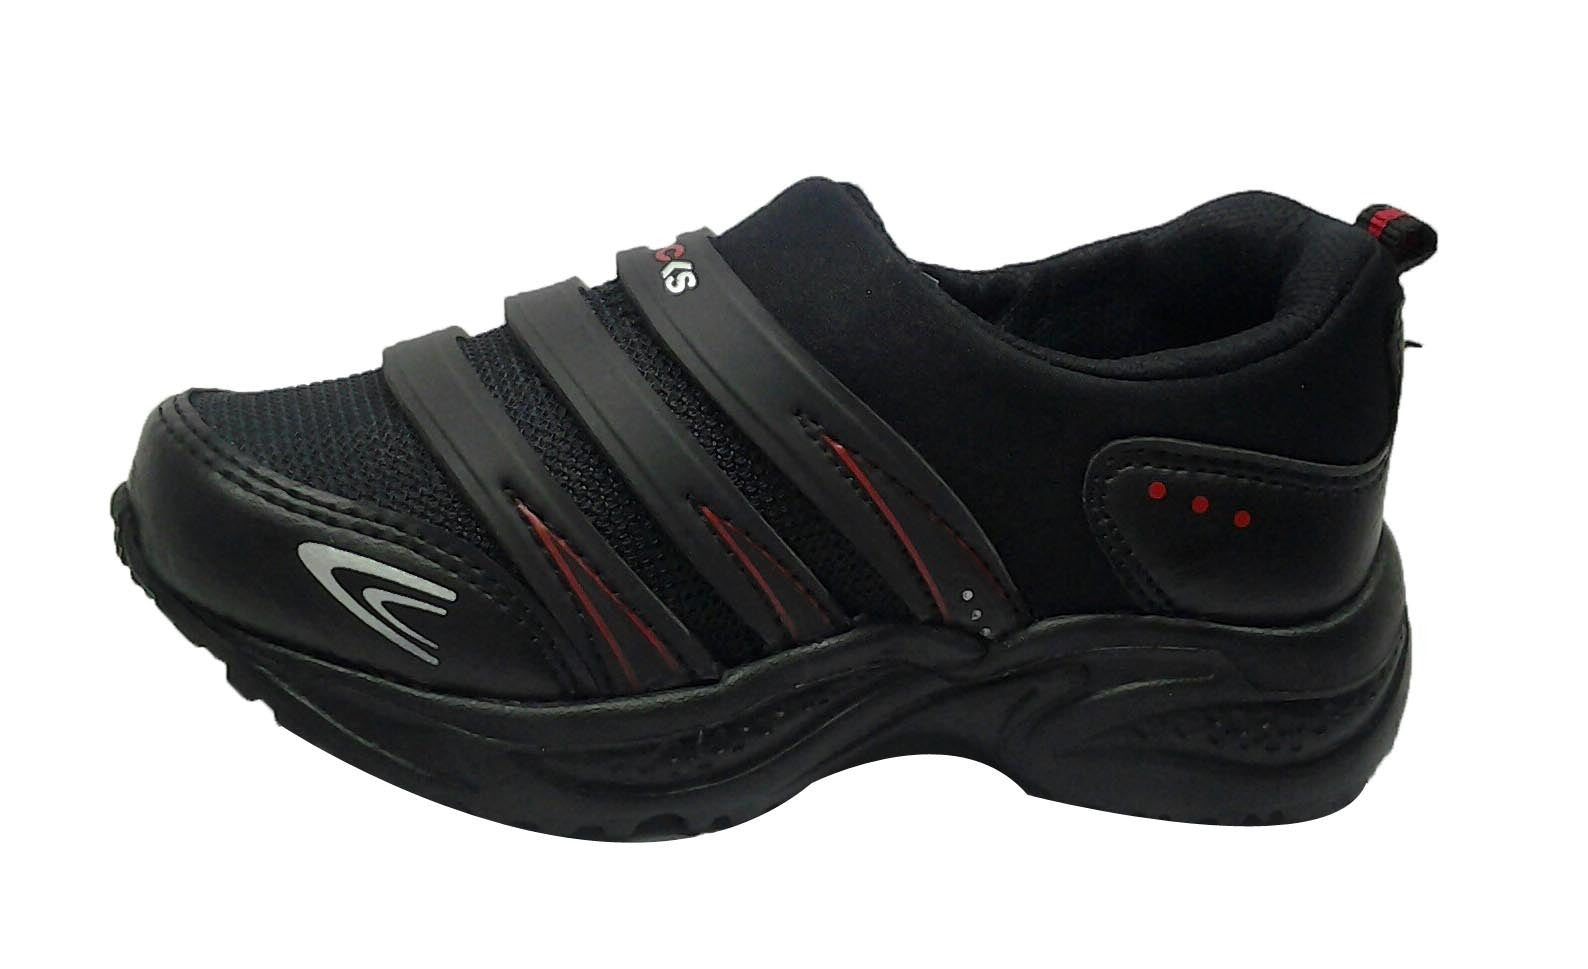 Goyalsons Sport Shoes Wsl 411